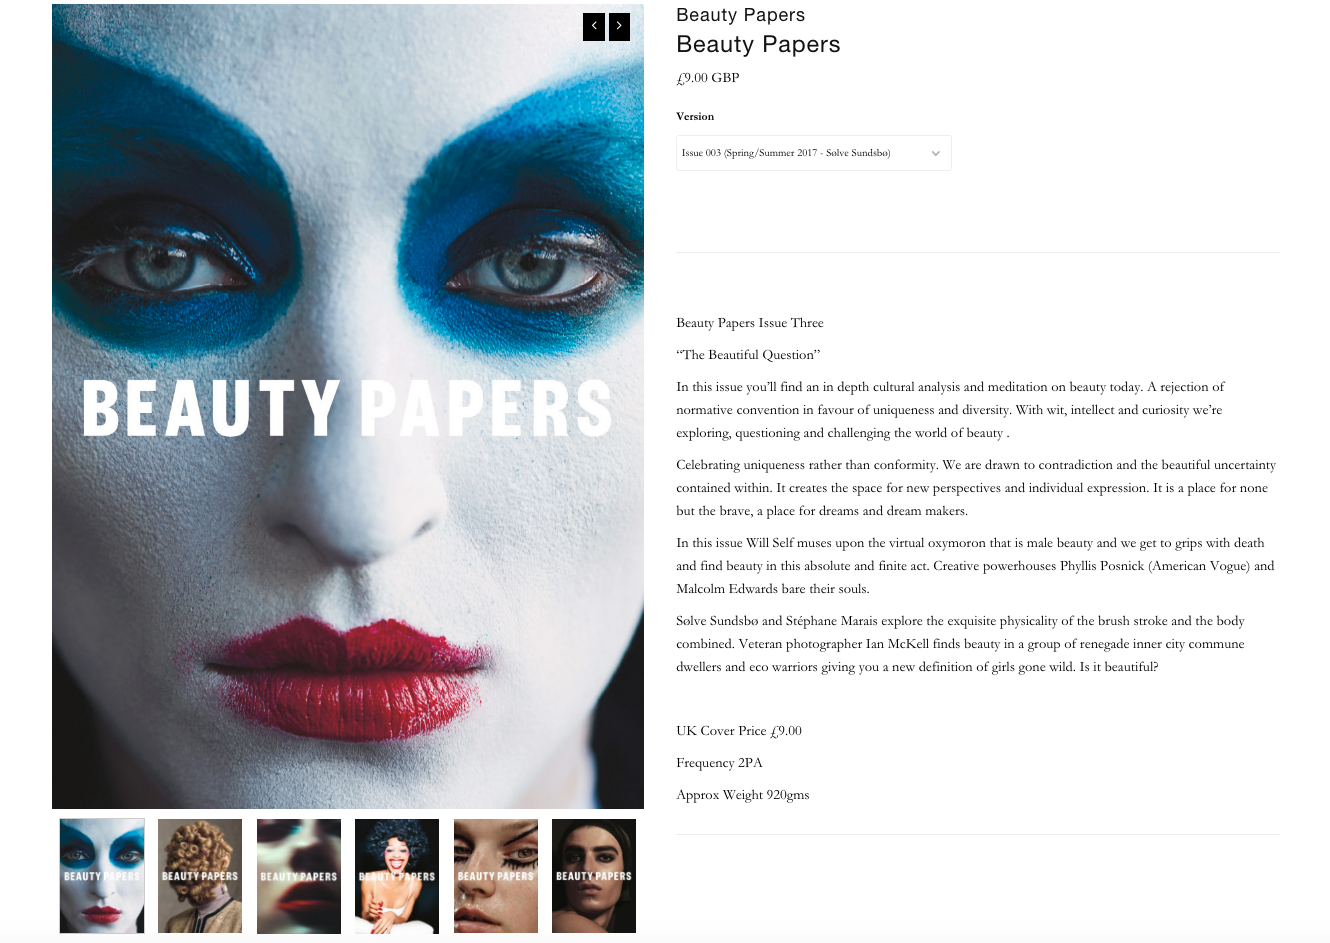 Beauty papers with IAIN MCKELL